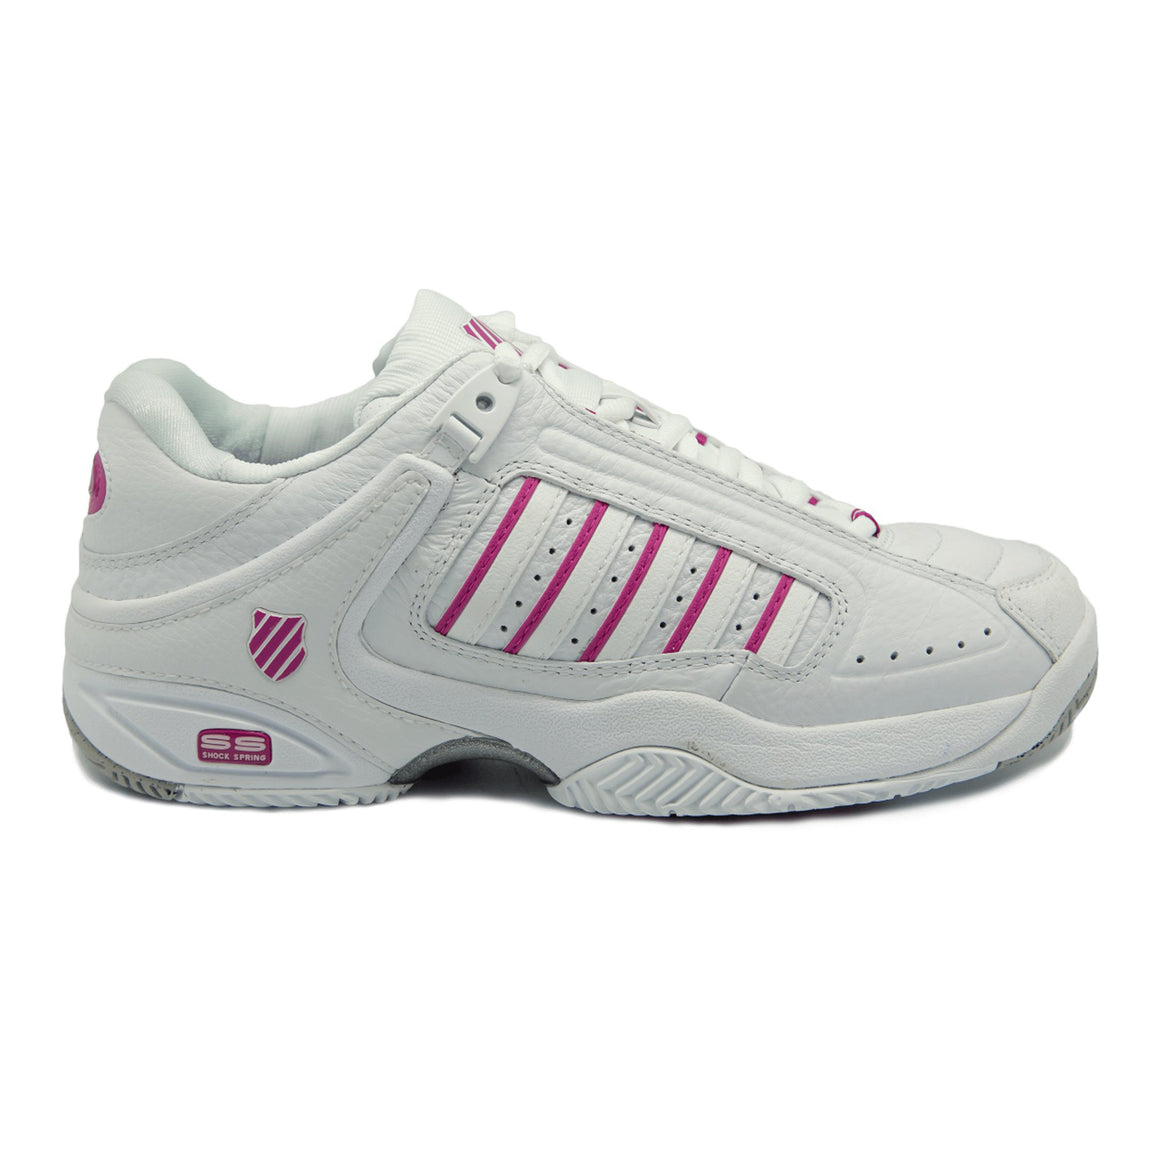 Defier Trainers for Women in White/Berry